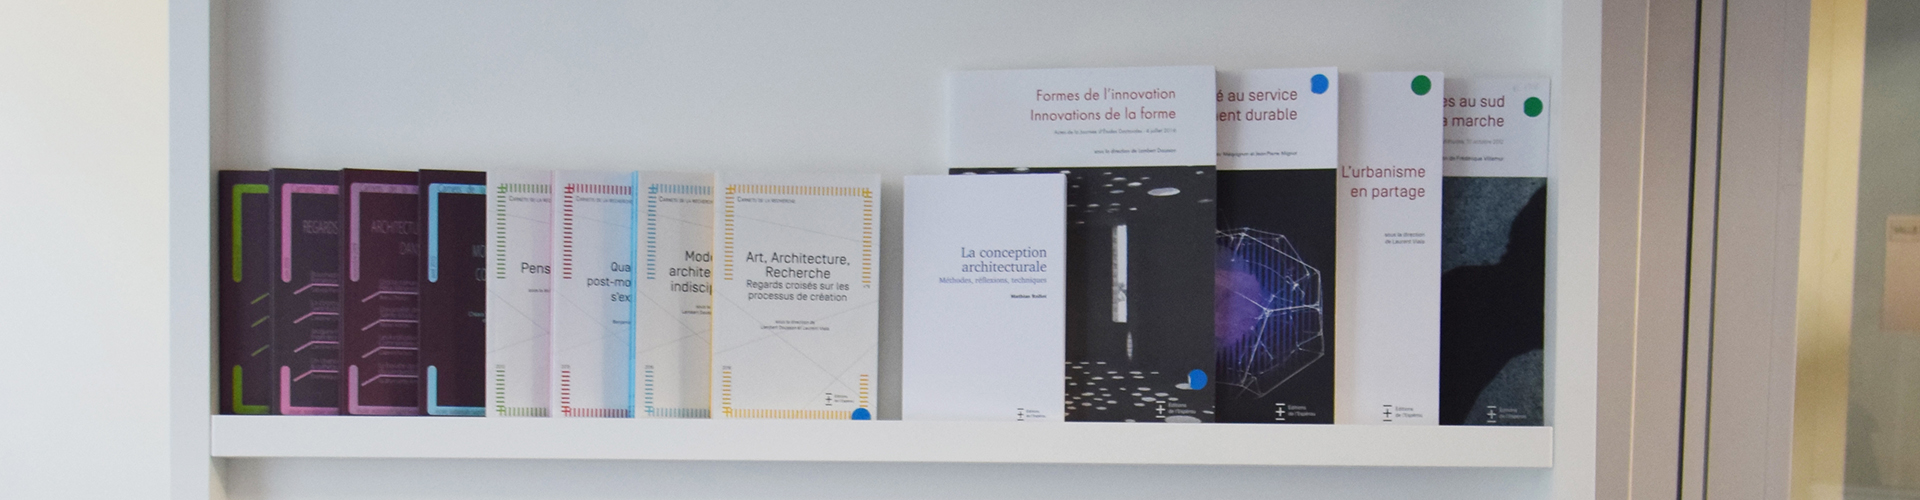 Bandeau section Ressources et editions editions de l'esperou